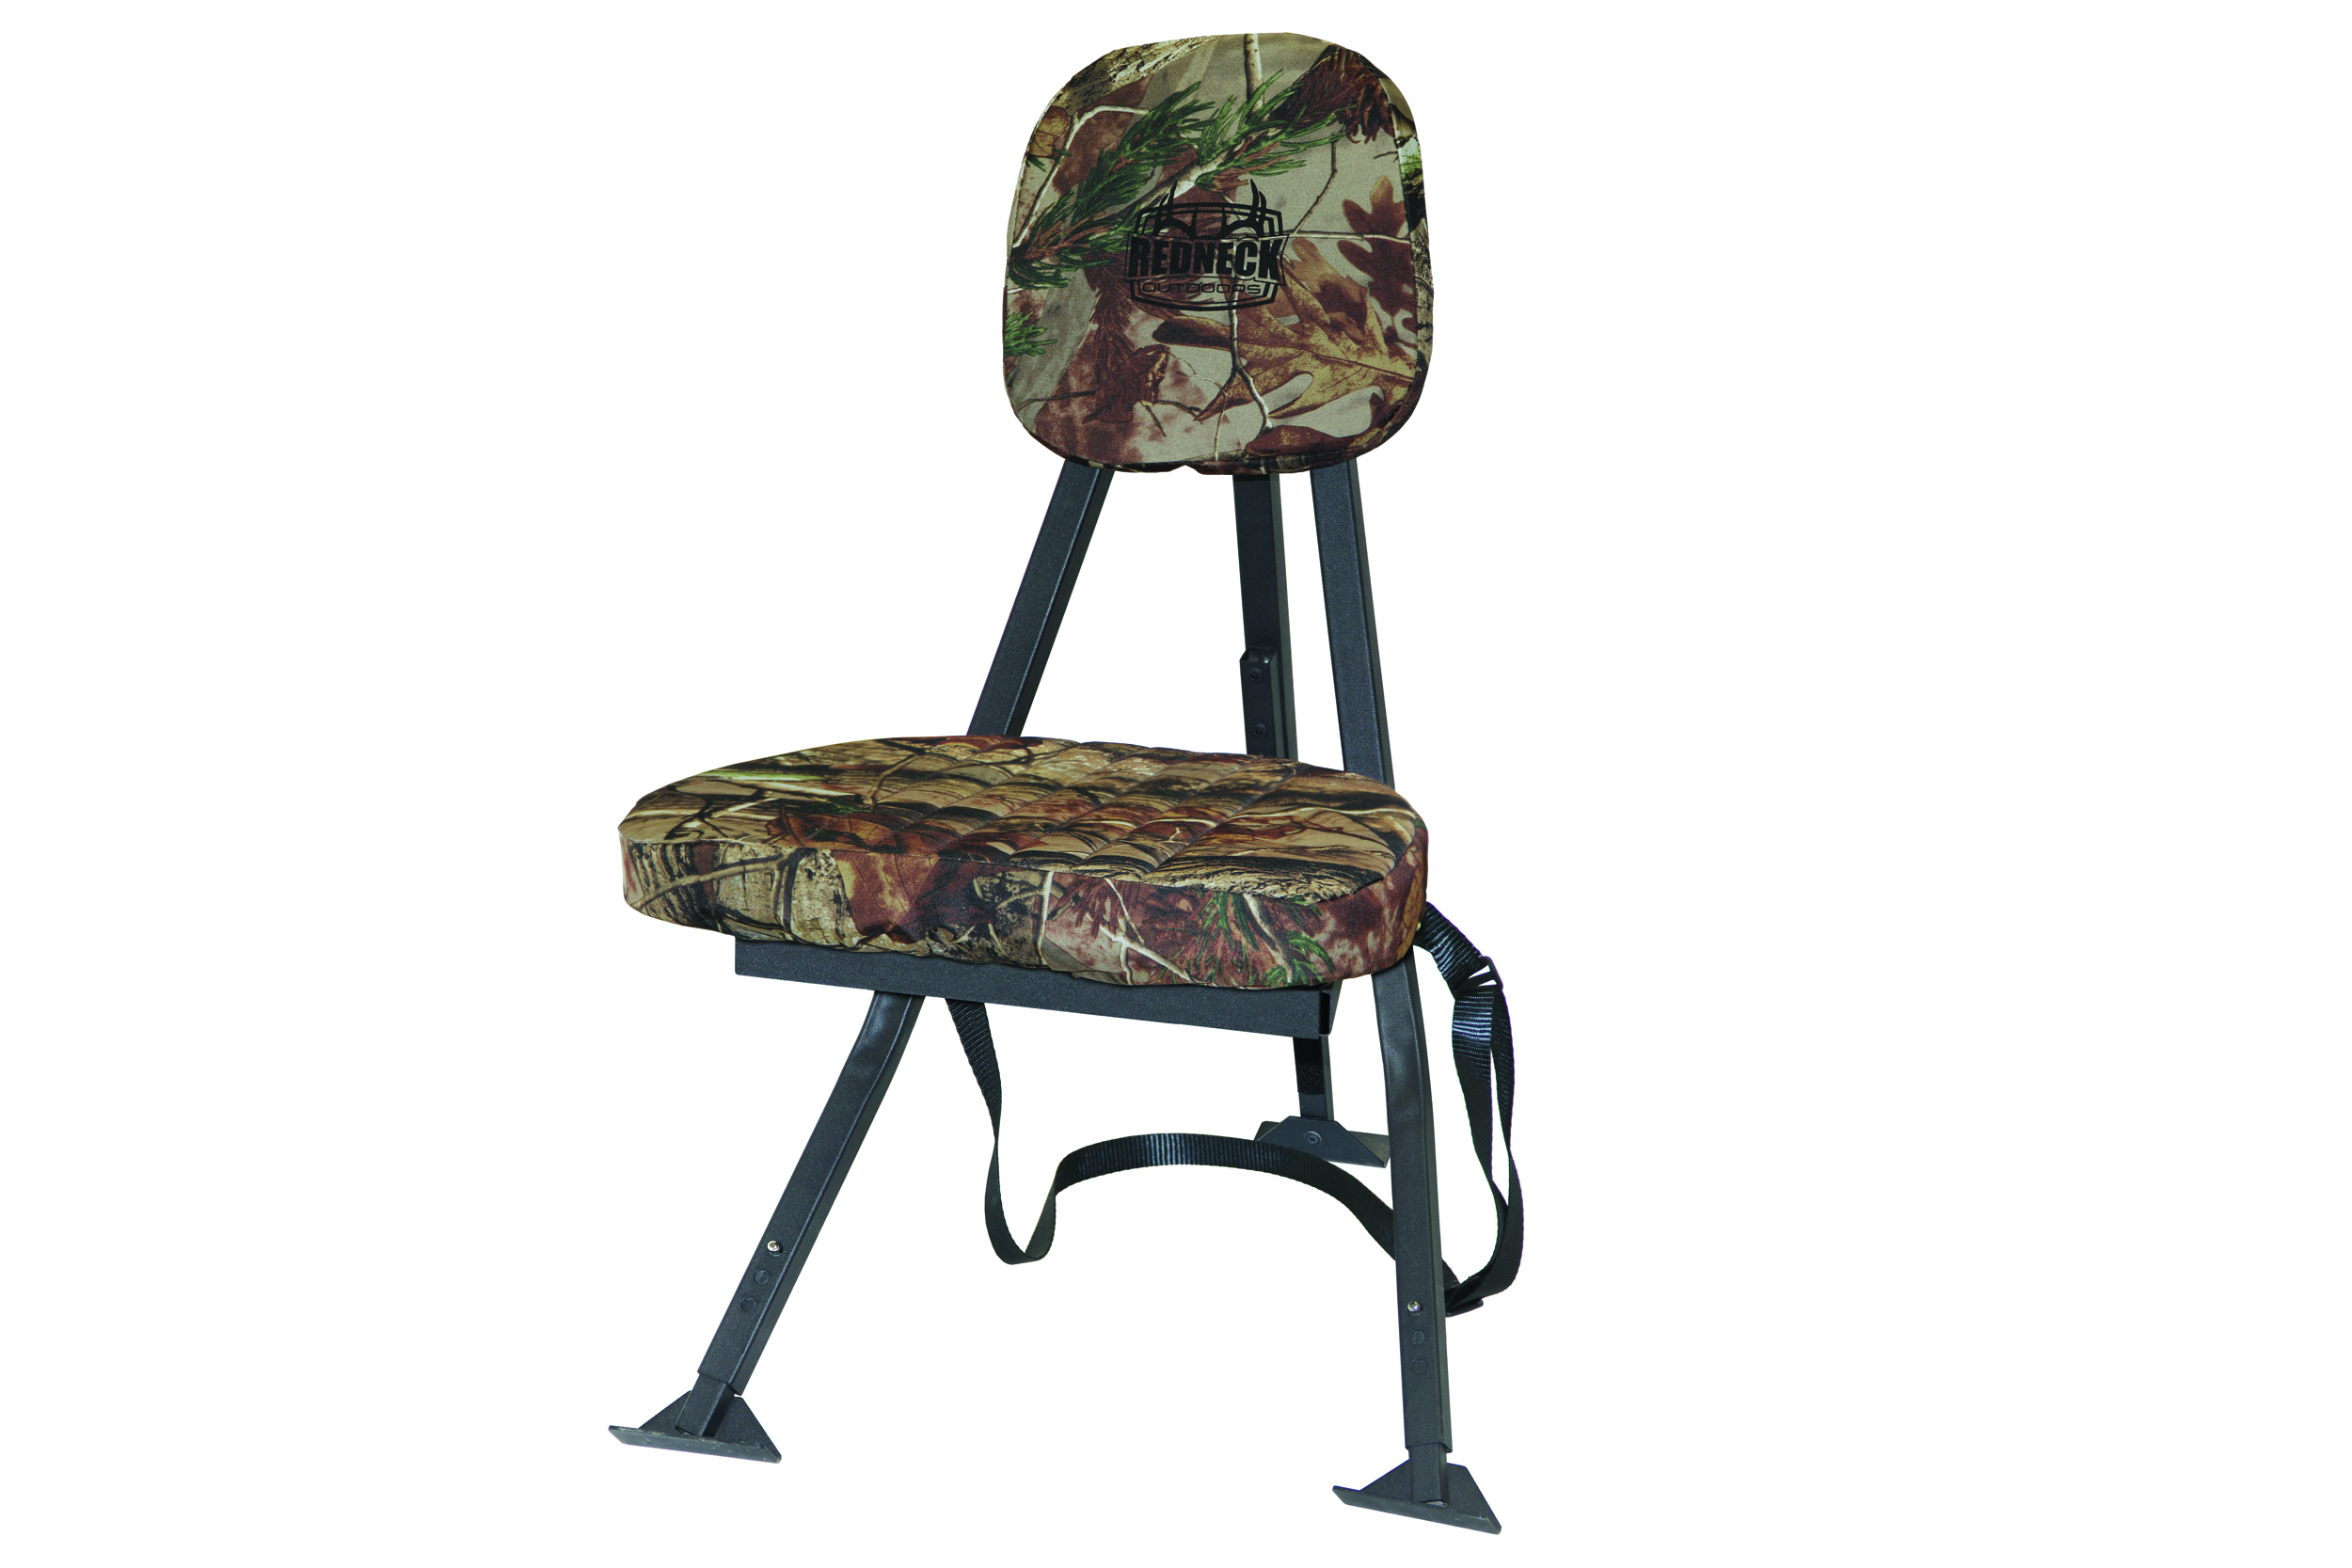 predator hunting chair eames chairs silent bow hanger tree stand accessory